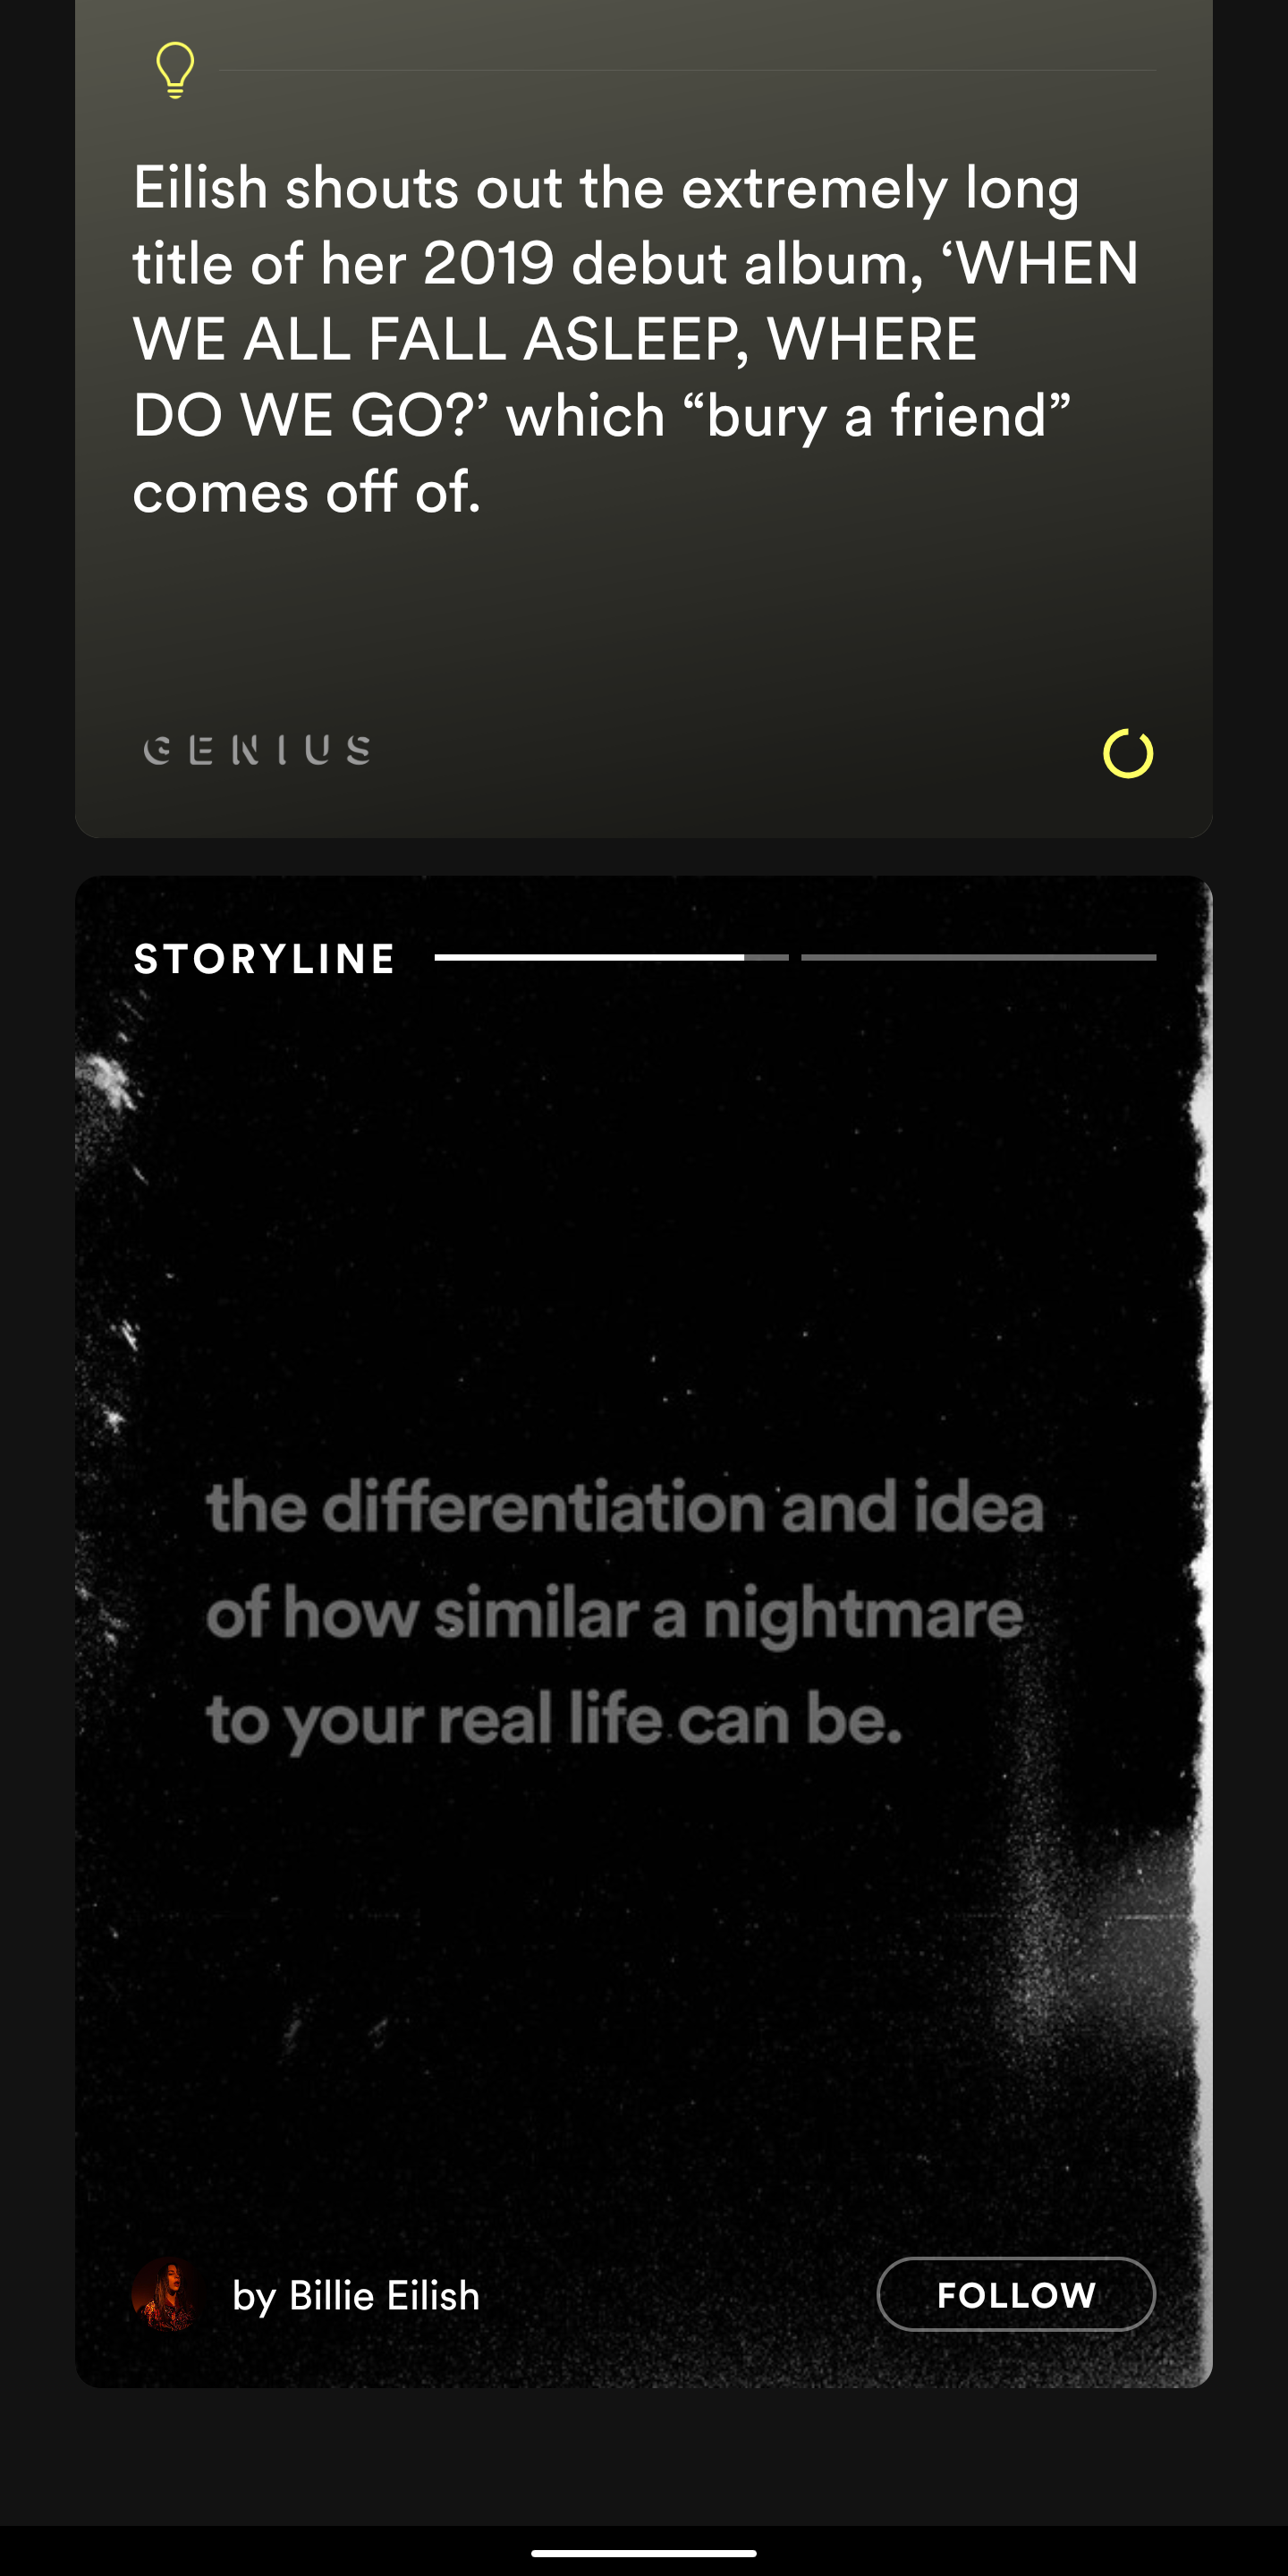 Spotify 'Storyline' lets artists tell the story behind their